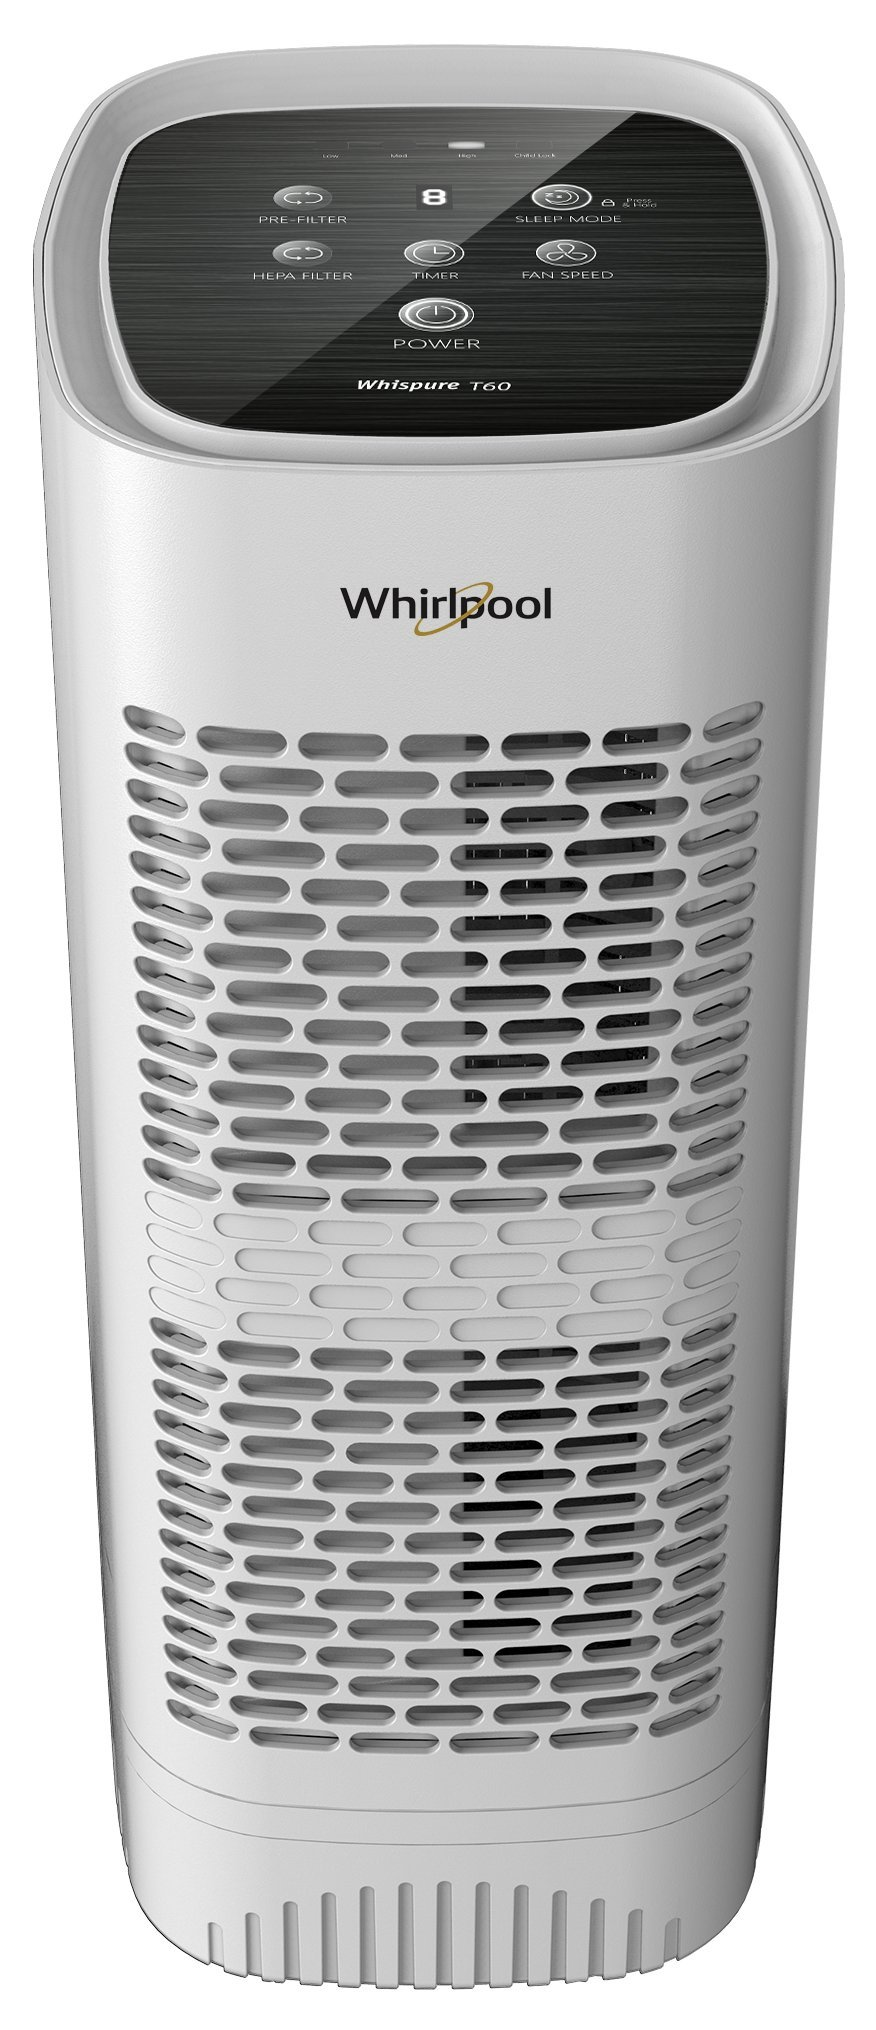 Whirlpool Whispure WPT60P, True HEPA Air Purifier, Activated Carbon, Advanced Anti-Bacteria, Ideal for Allergies, Odors, Pet Dander, Mold, Smoke, Smokers, and Germs, Medium, White